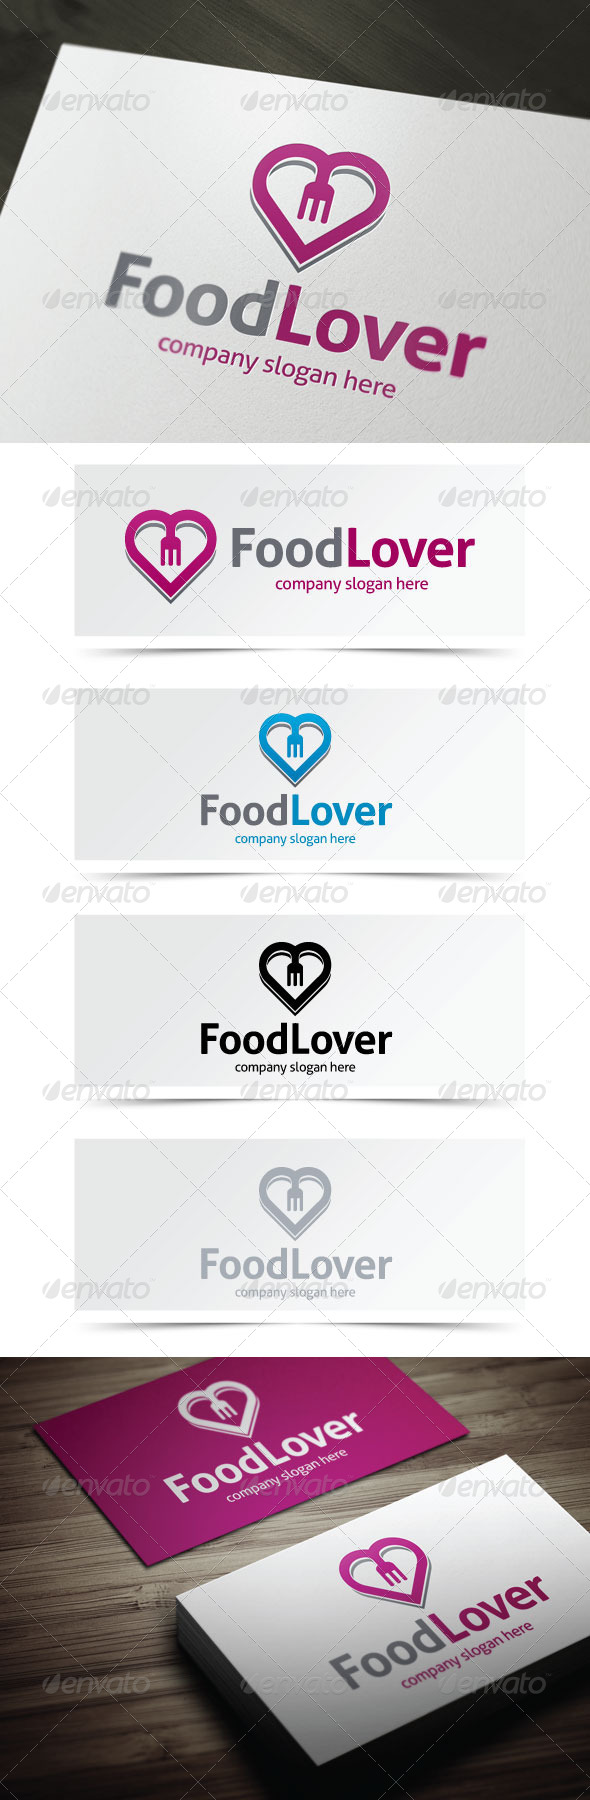 GraphicRiver Food Lover 5189113